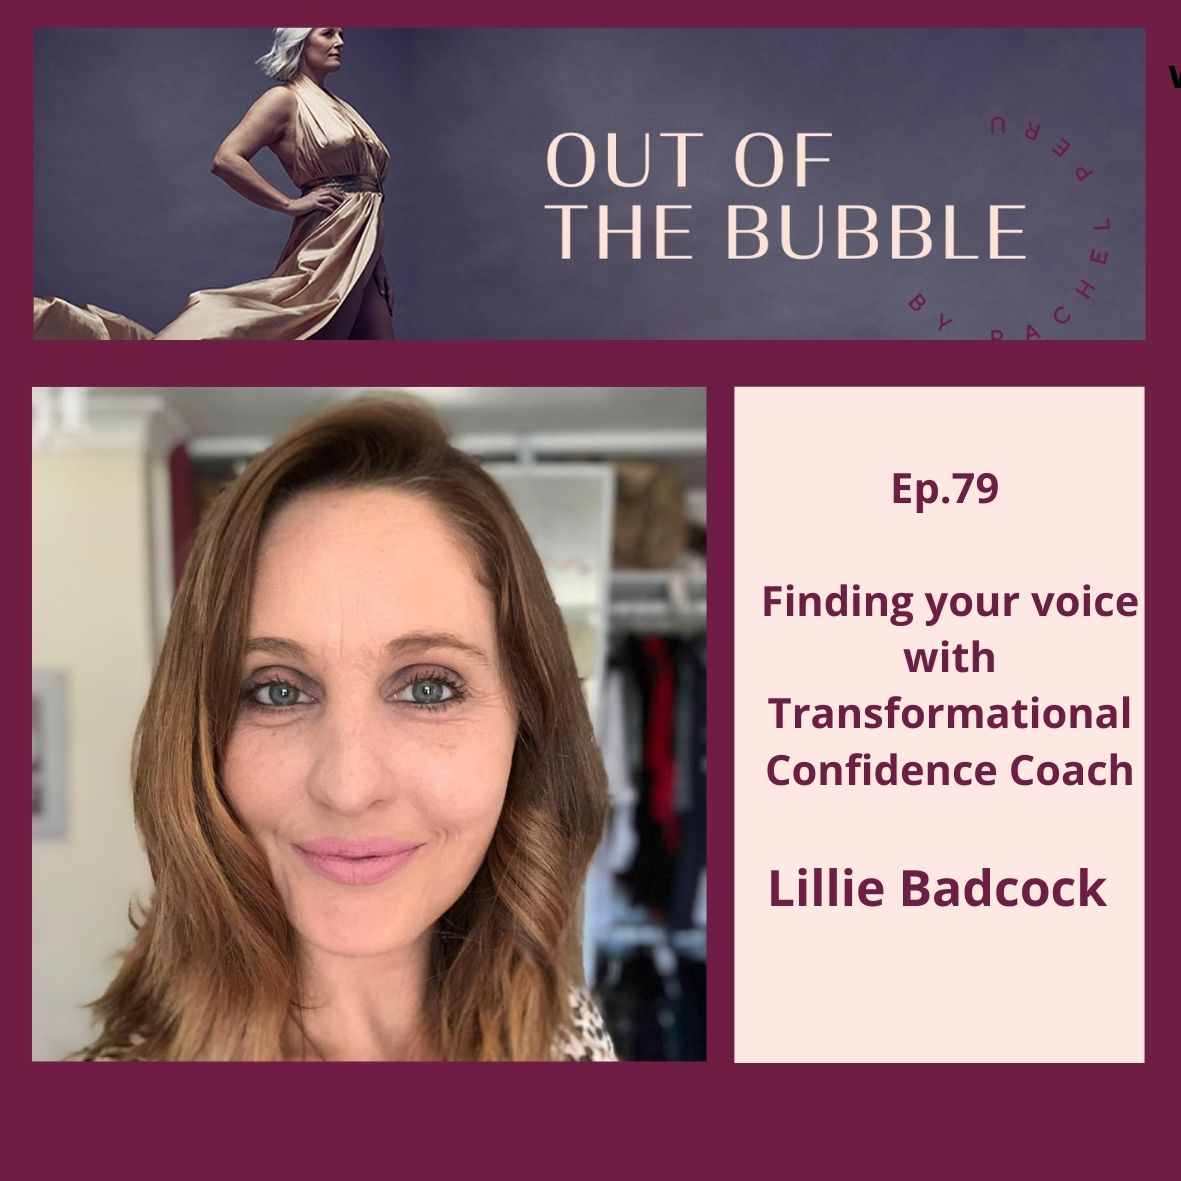 Ep.79 Out of the Bubble with Transformational Confidence Coach Lilli Badcock.